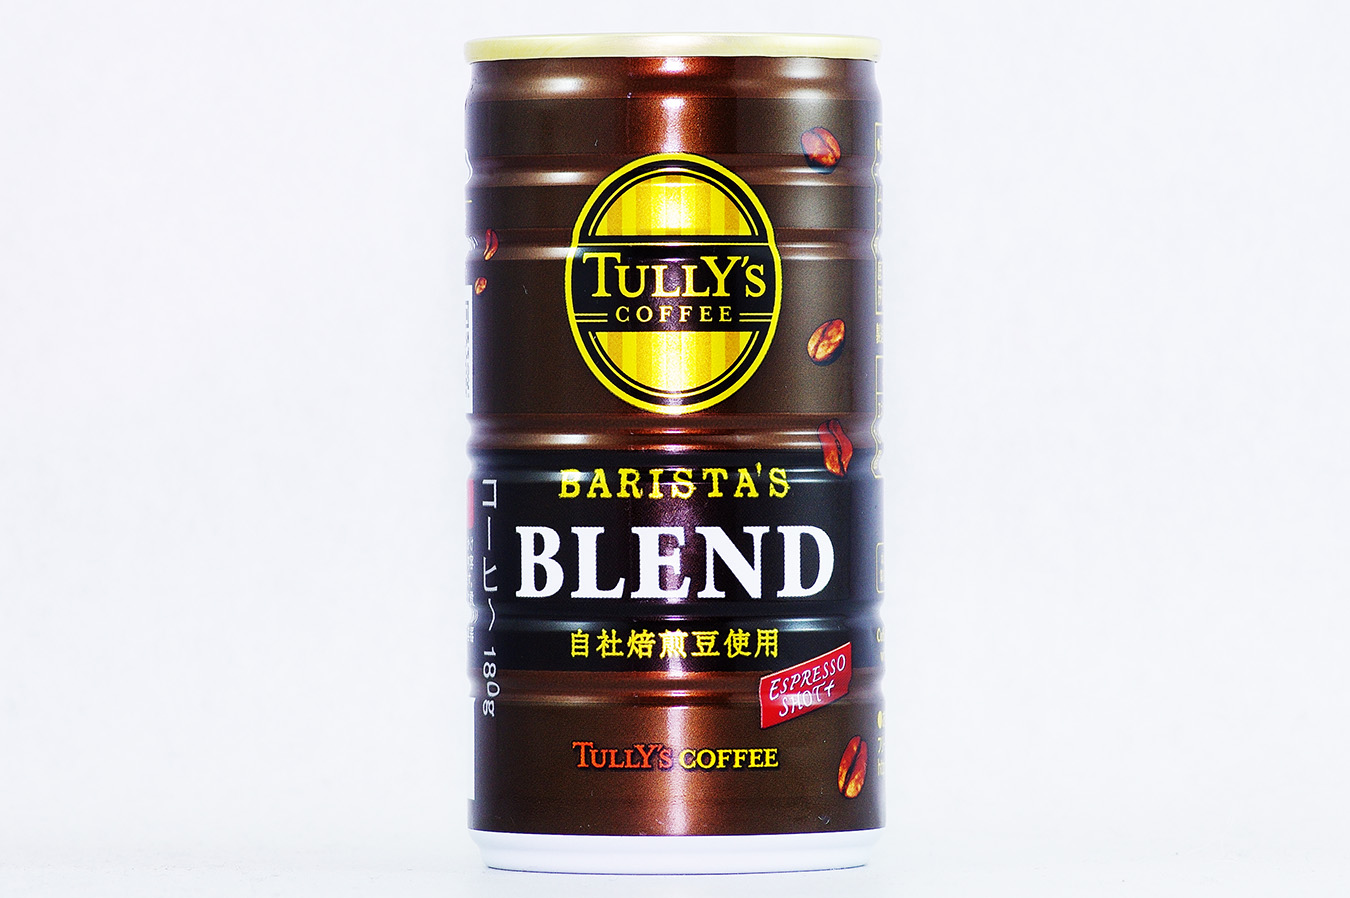 TULLY'S COFFEE BARISTA'S BLEND 2016年